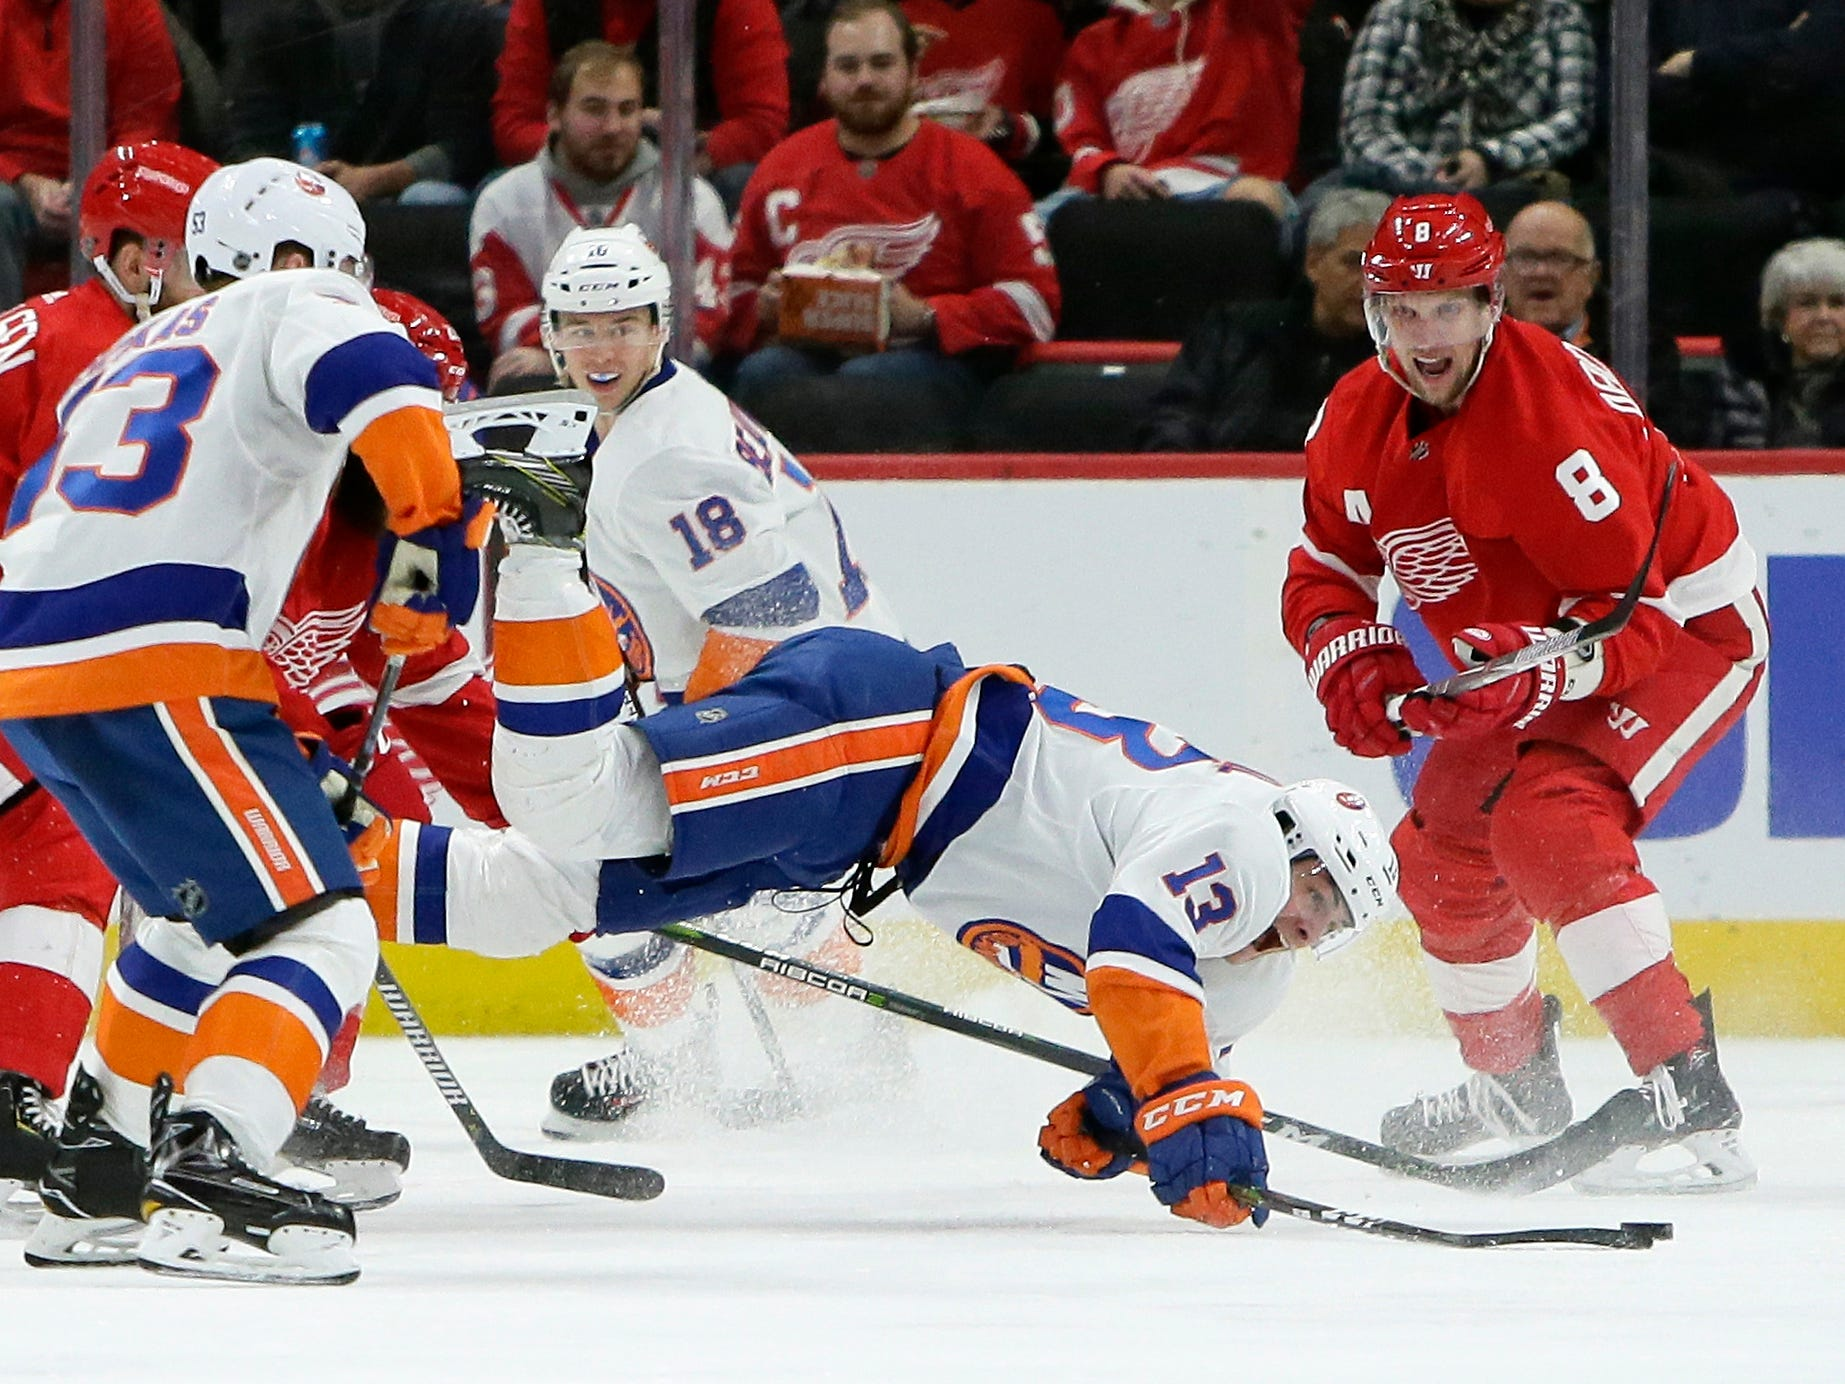 New York Islanders center Mathew Barzal (13) gets tripped up during the second period.